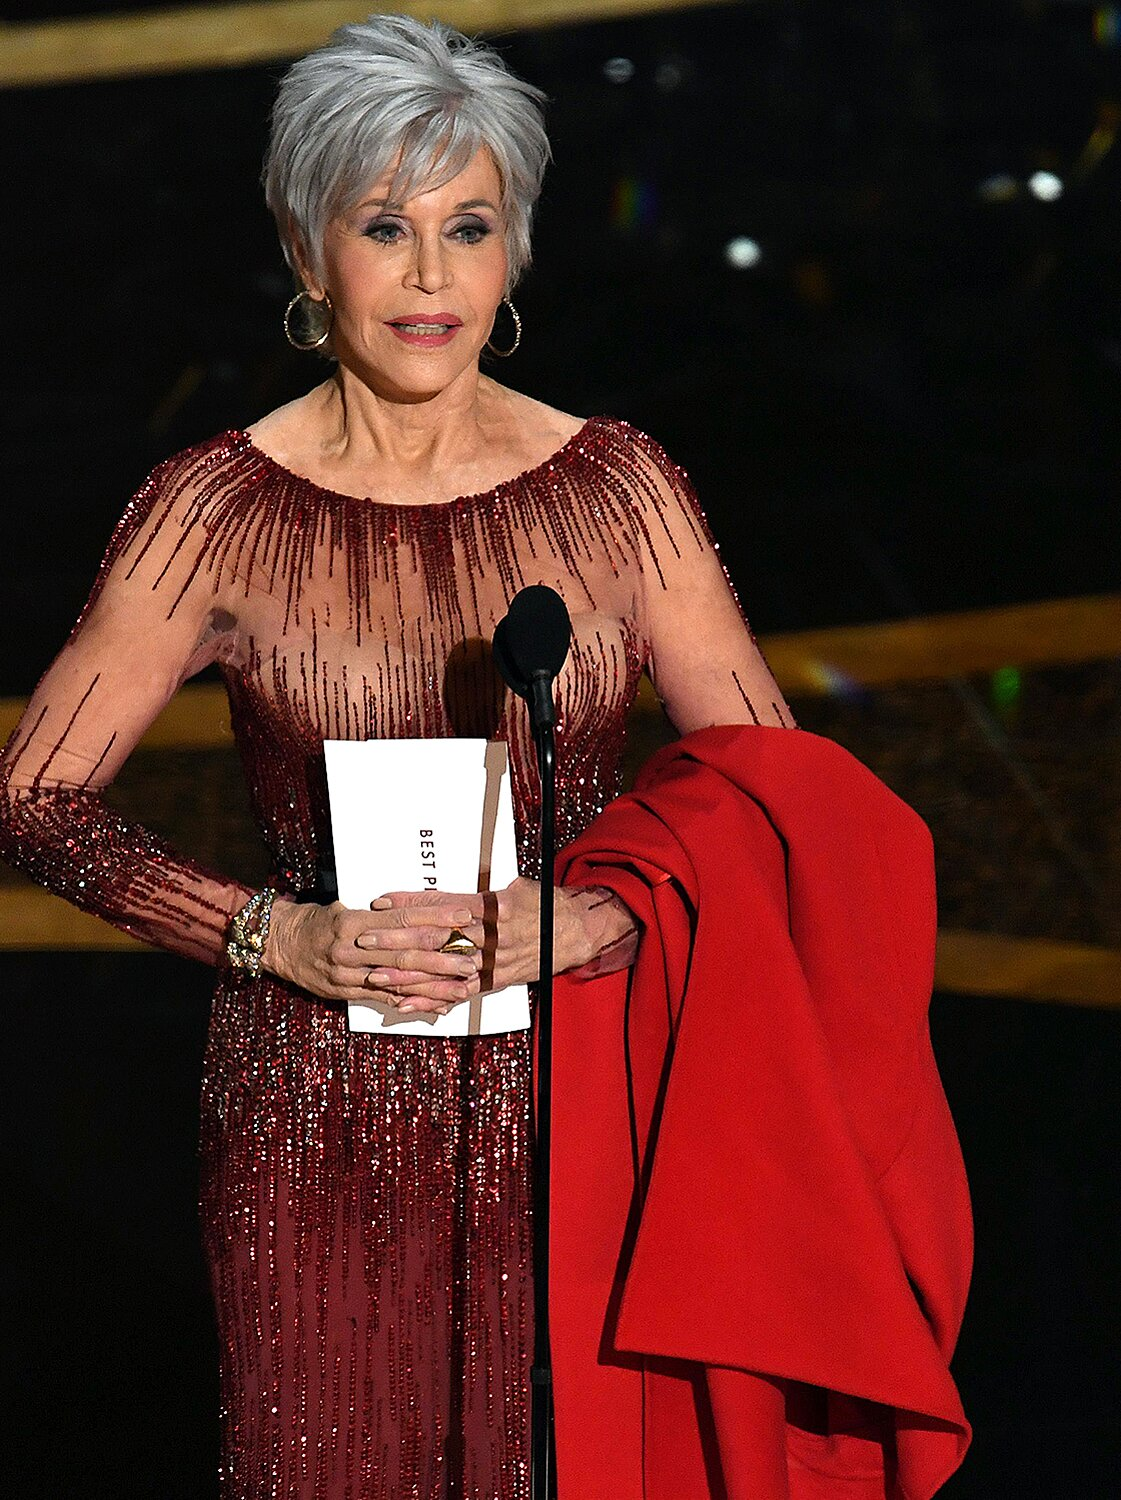 Jane Fonda S Hair Colorist Talks About Her Gray Pixie Cut At The 2020 Oscars People Com